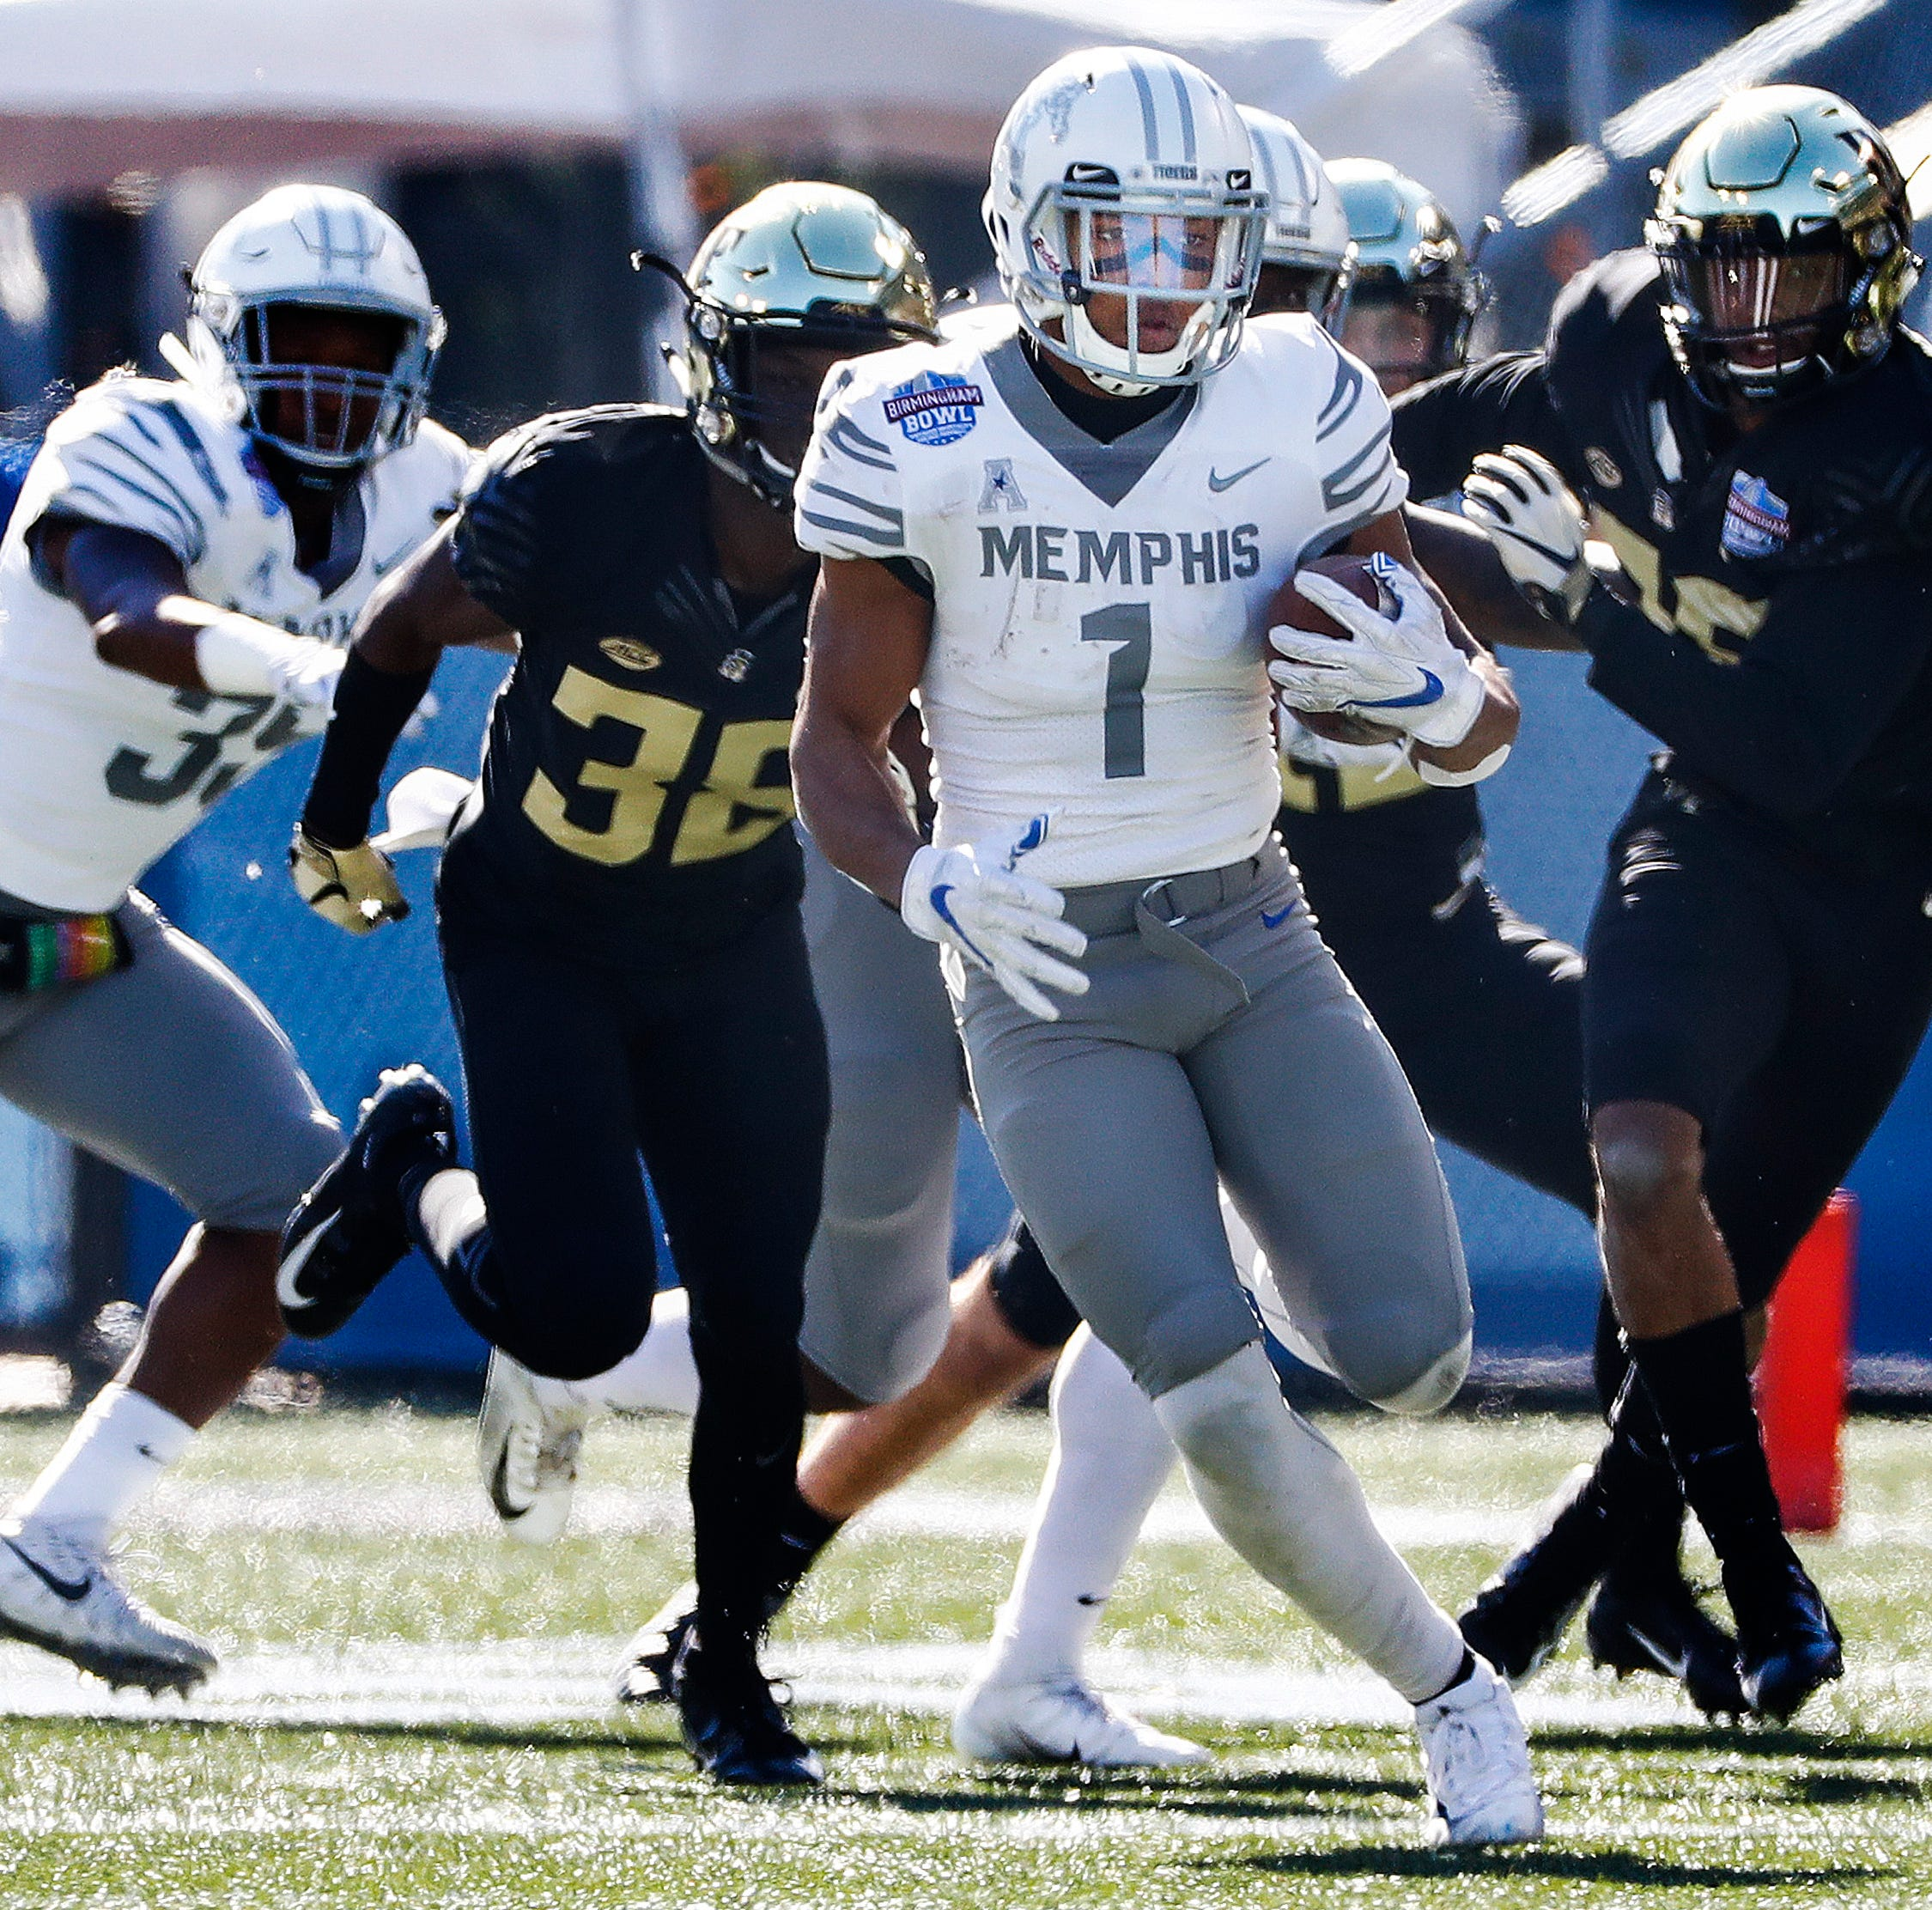 Dallas Cowboys select Memphis' Tony Pollard in fourth round of NFL Draft